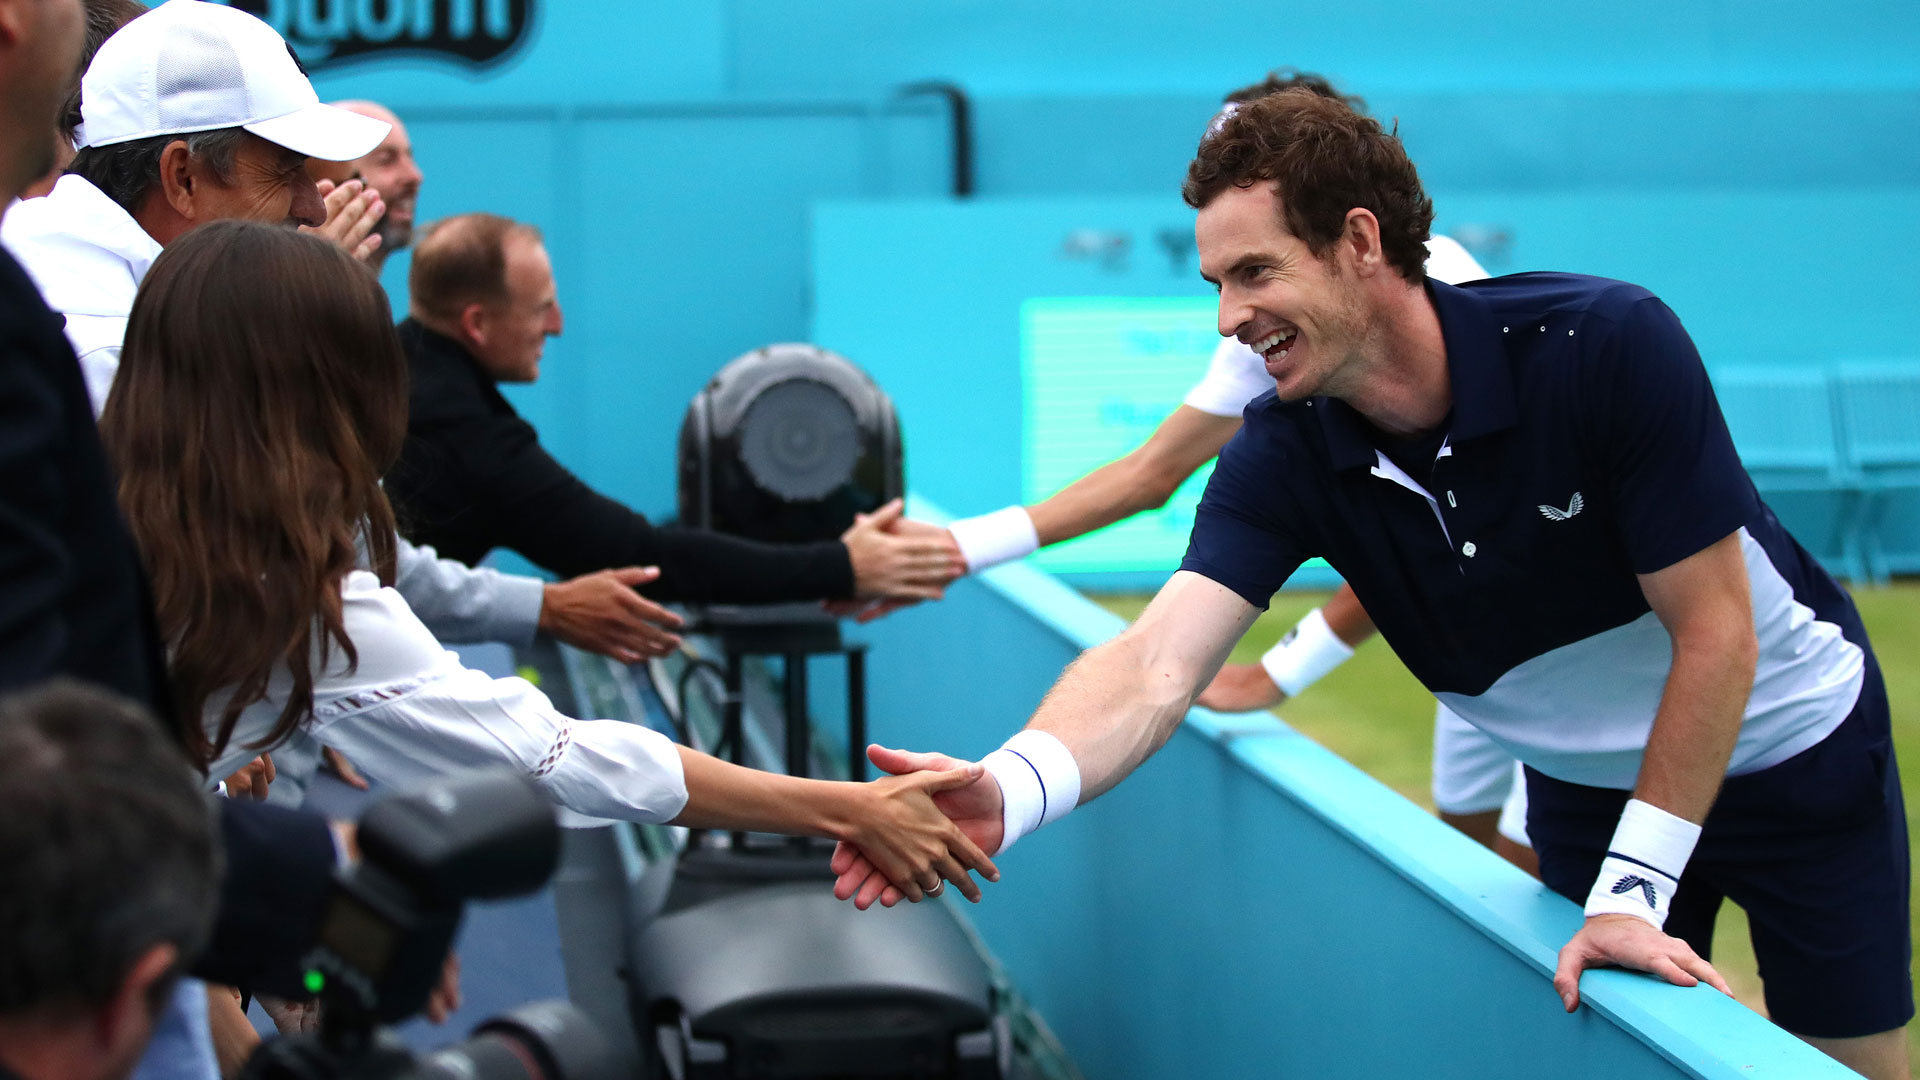 <a href='https://www.atptour.com/en/players/andy-murray/mc10/overview'>Andy Murray</a> celebrates at Queen's Club 2019